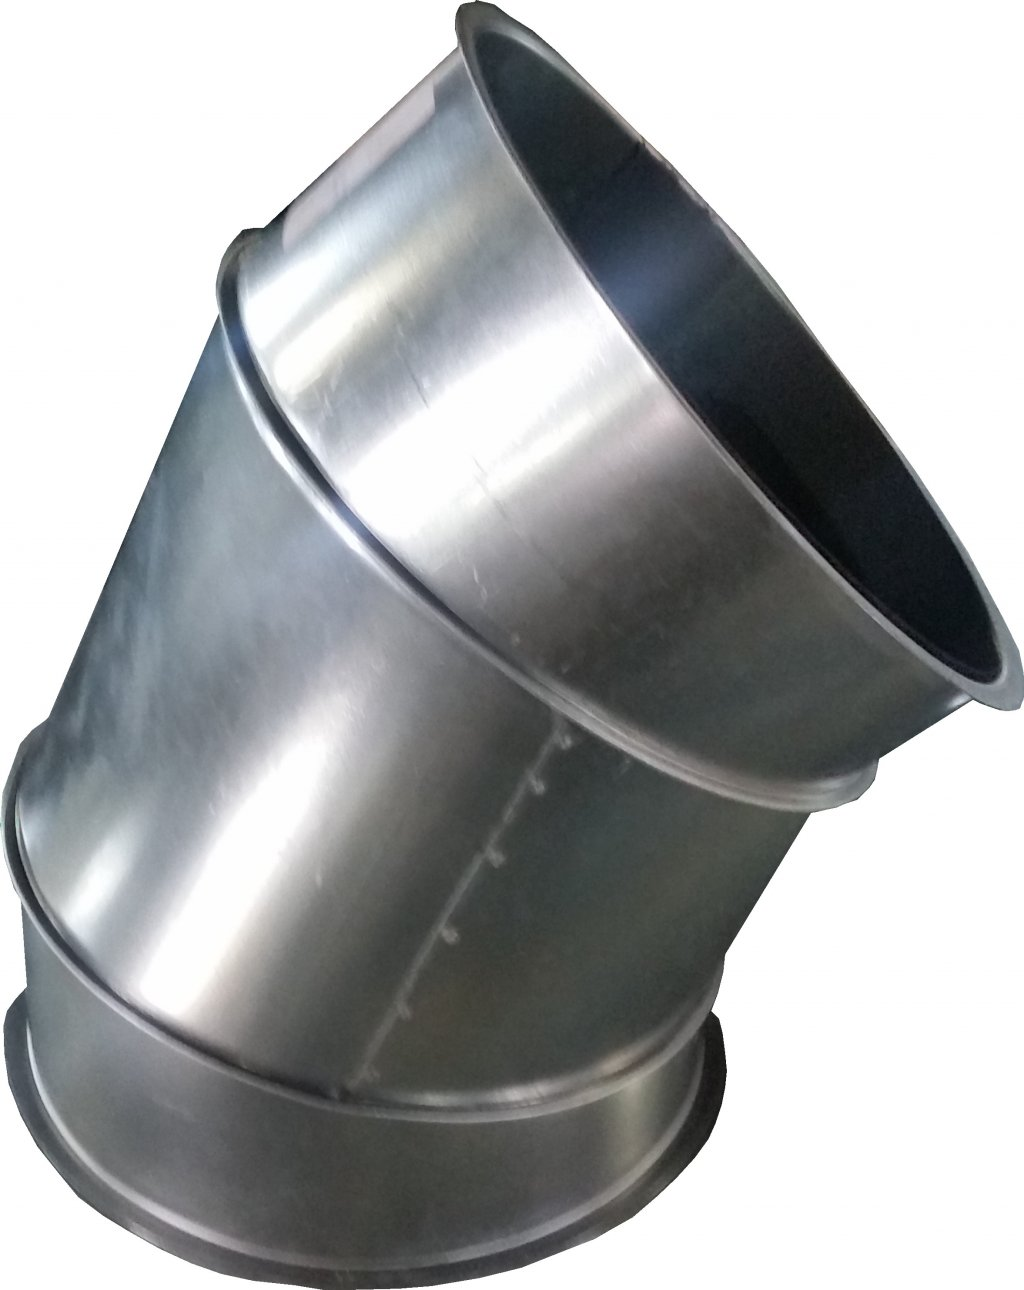 image-618145-Gasketed_Ductwork_45_Degree_Elbow.w640.jpg